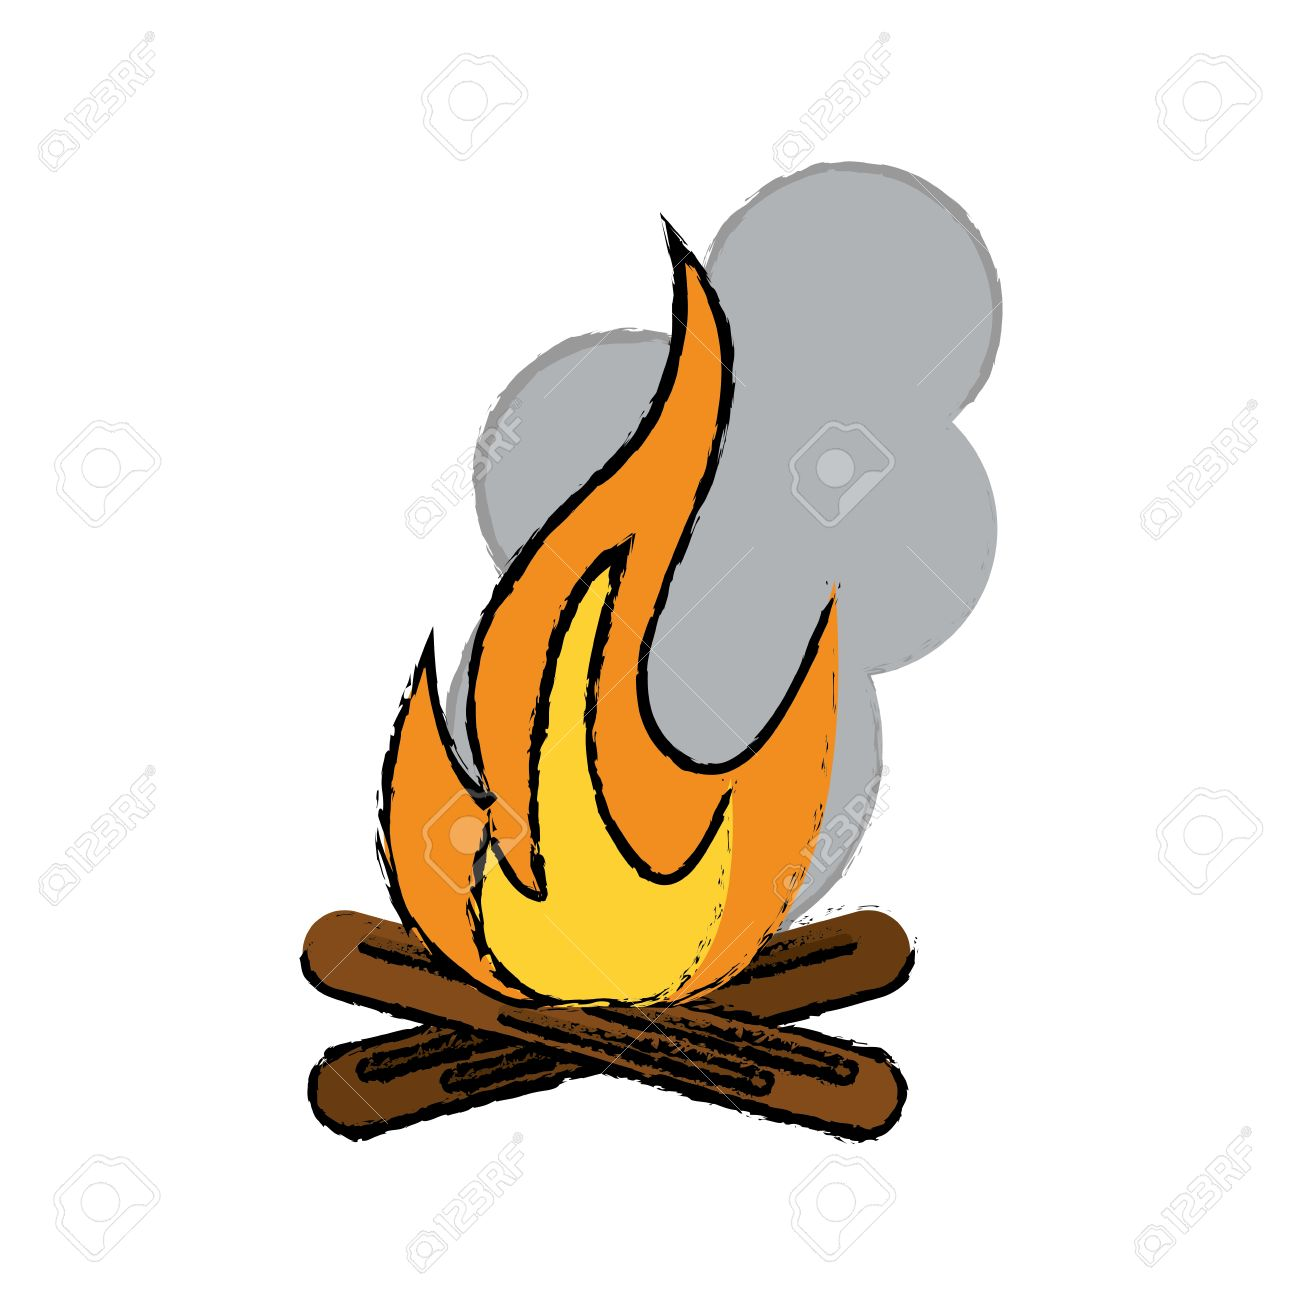 Drawing Campfire Woods Camping Vector Illustration Eps 10 Stock